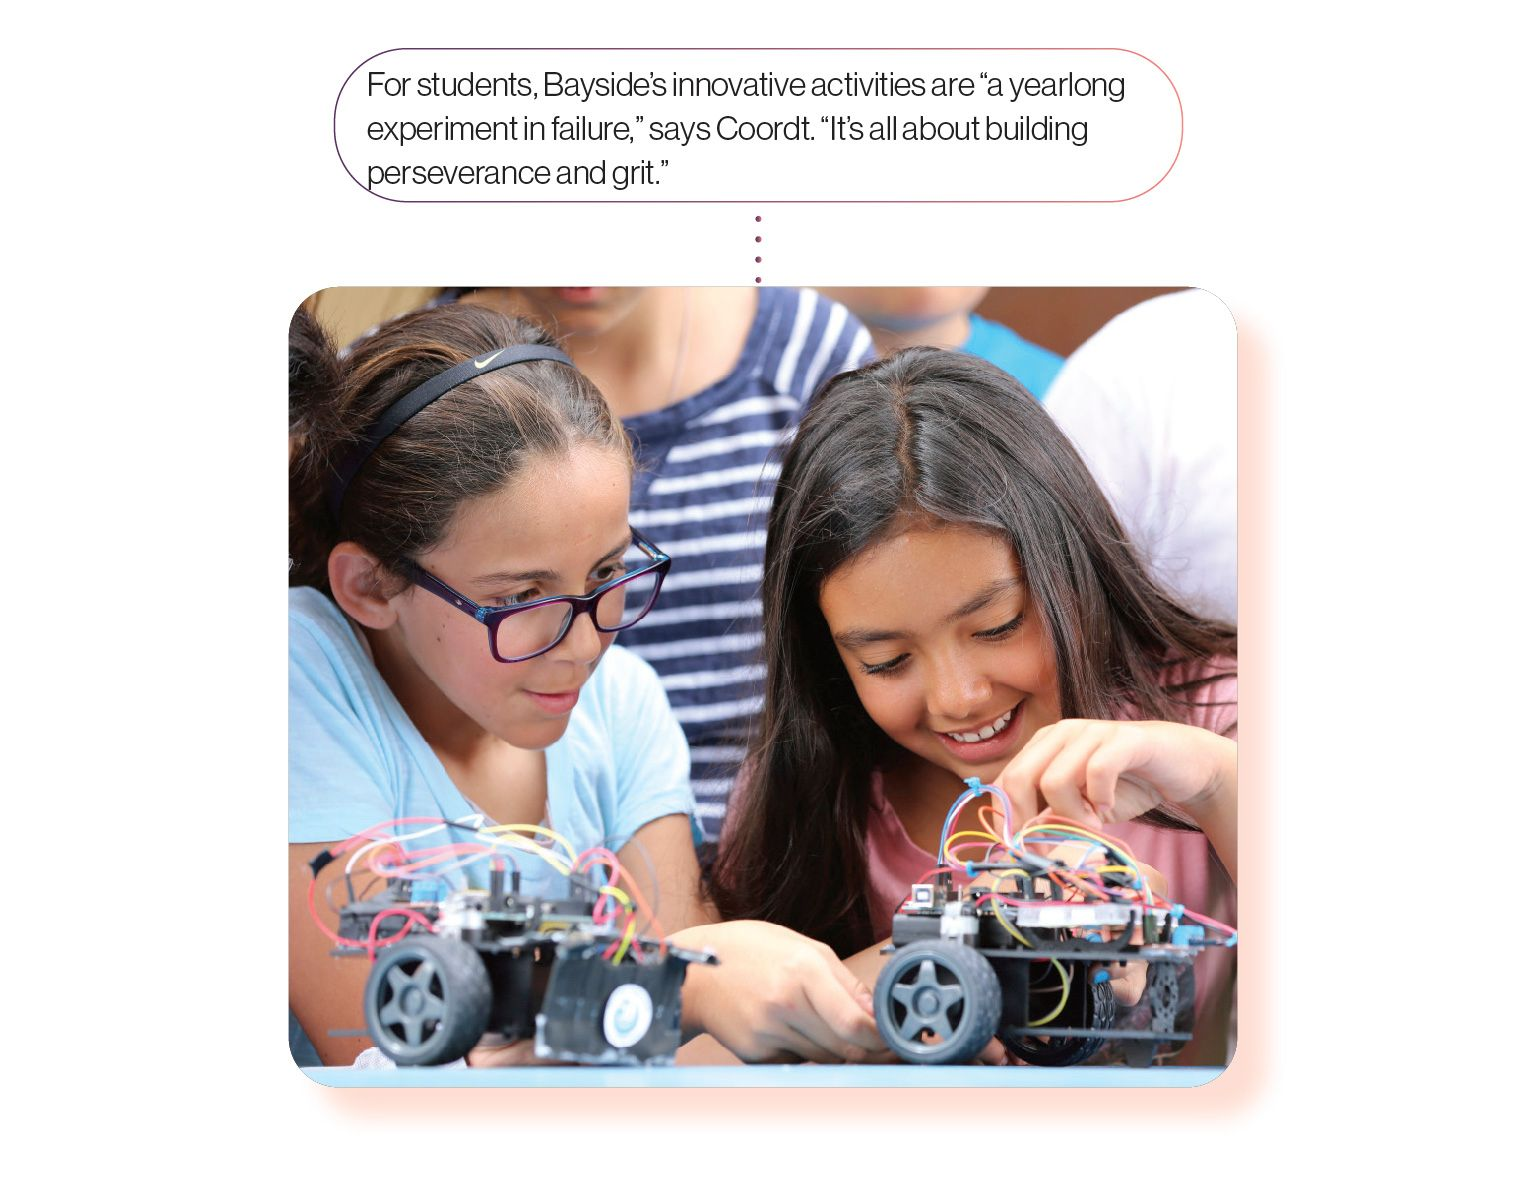 Image: Two young students learning with robots, with the caption 'Kids at Bayside STEAM Academy use 'exploration time' to learn about everything from robotics to birdwatching.'